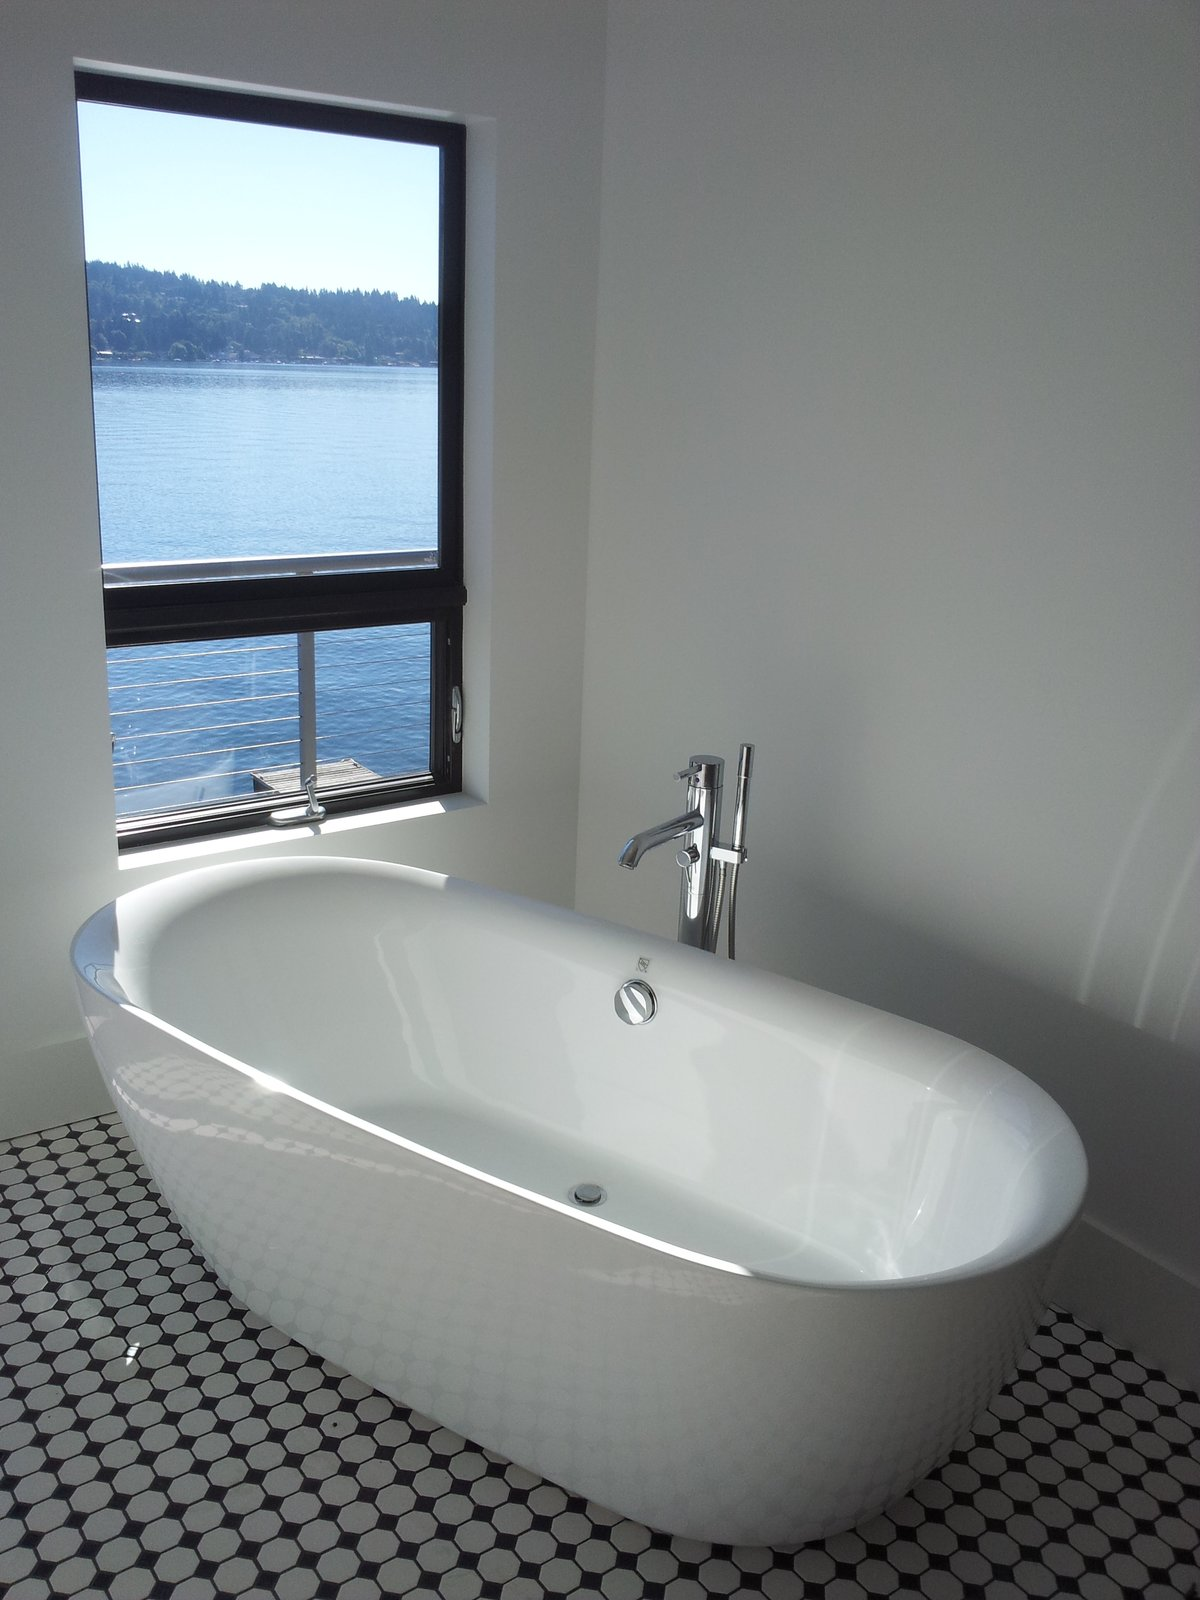 This freestanding tub allows the homeowners to site and enjoy the view during a soak.  Lake Washington Home by Atelier Drome